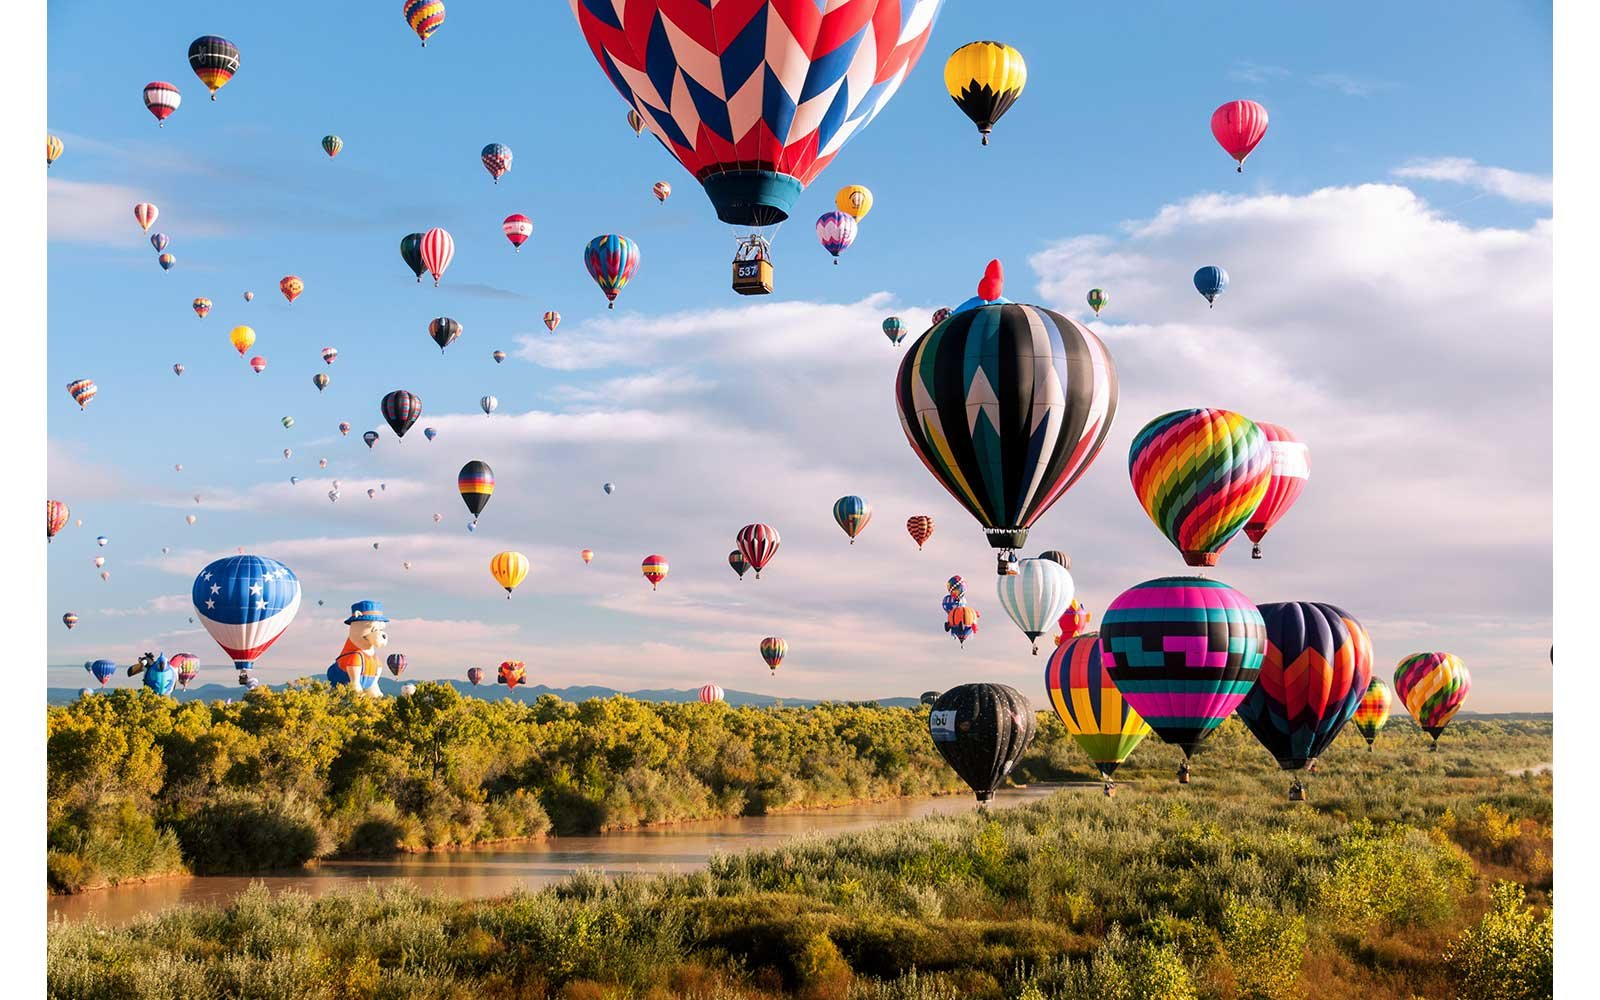 Hot air balloons making a graceful landing